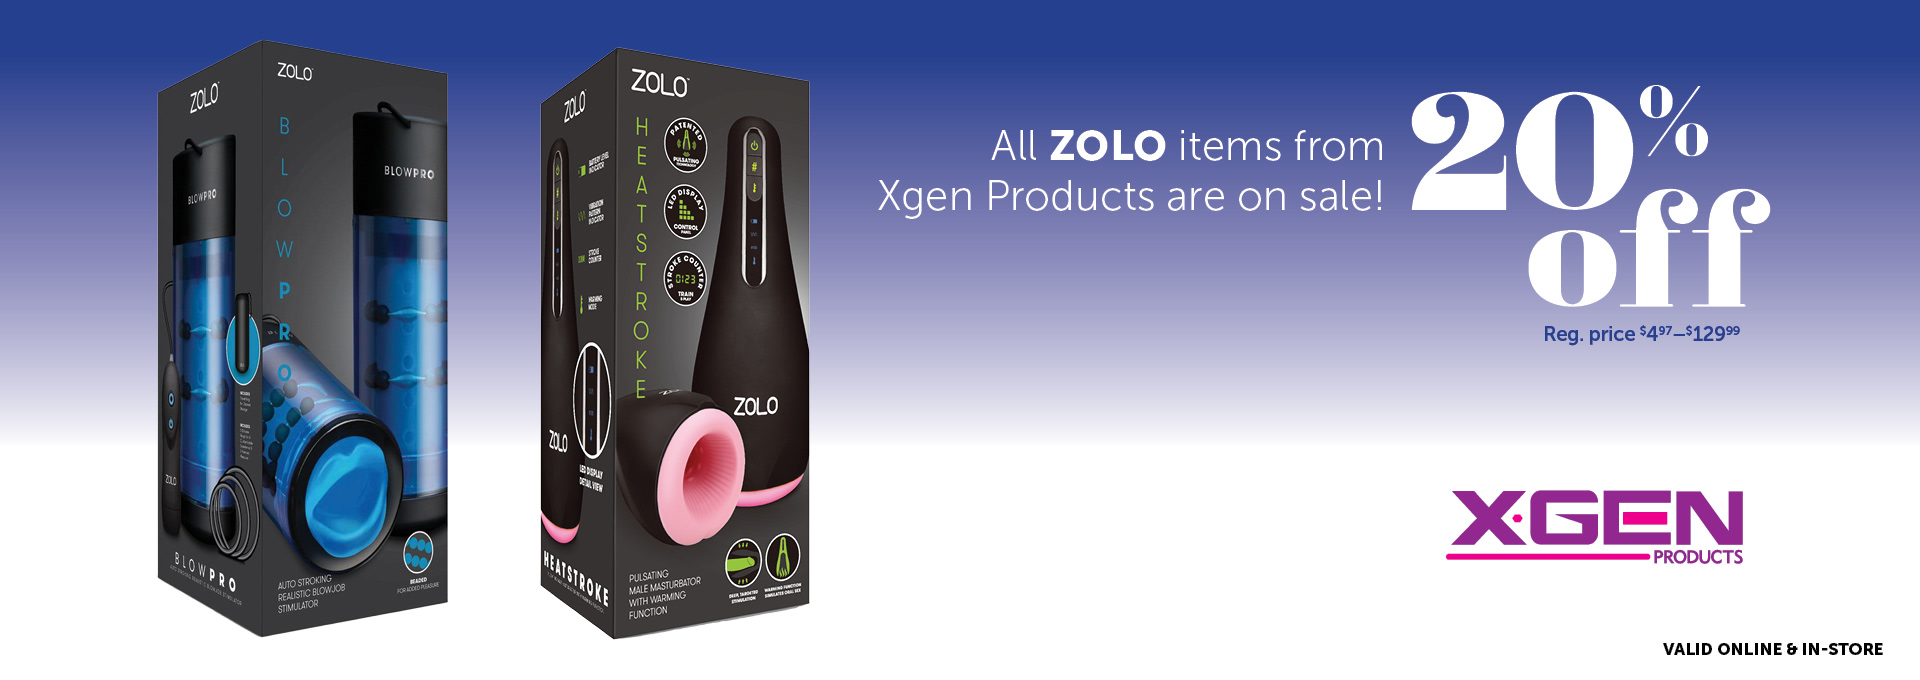 20% OFF ZOLO by XGEN Products